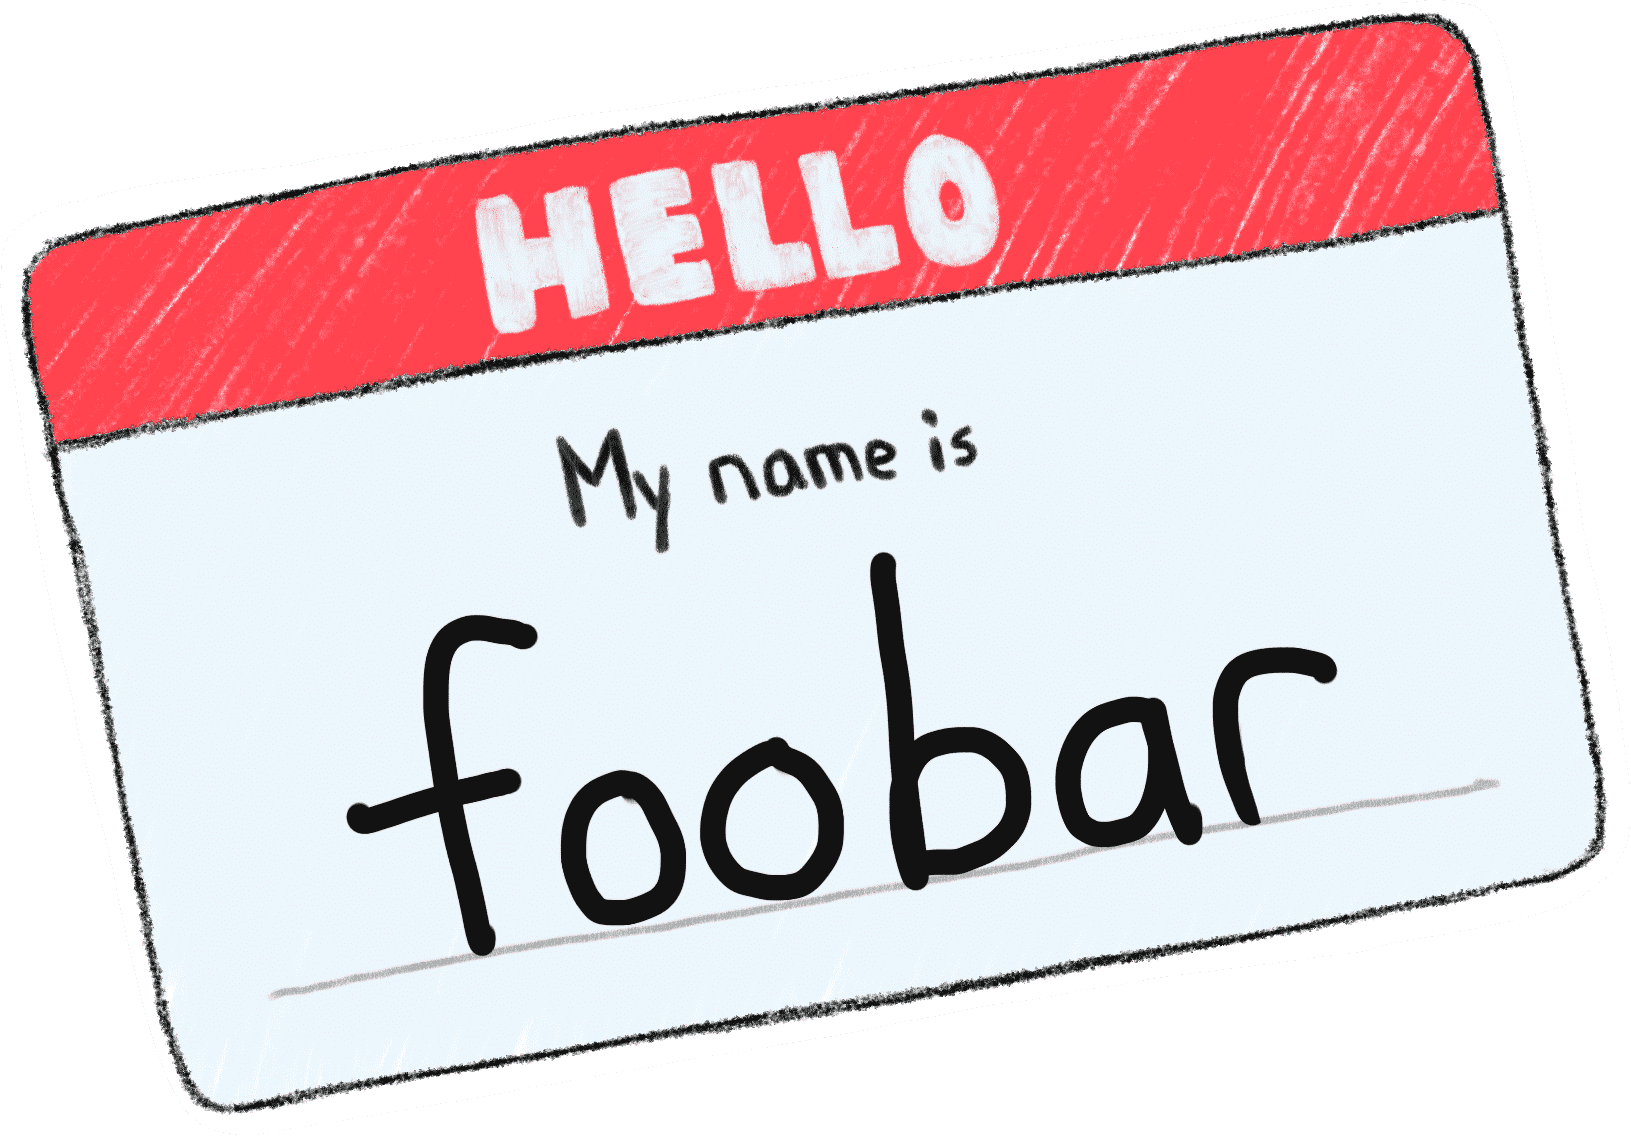 """A """"Hello, My Name Is"""" sticker with the name """"FOOBAR"""" on it"""